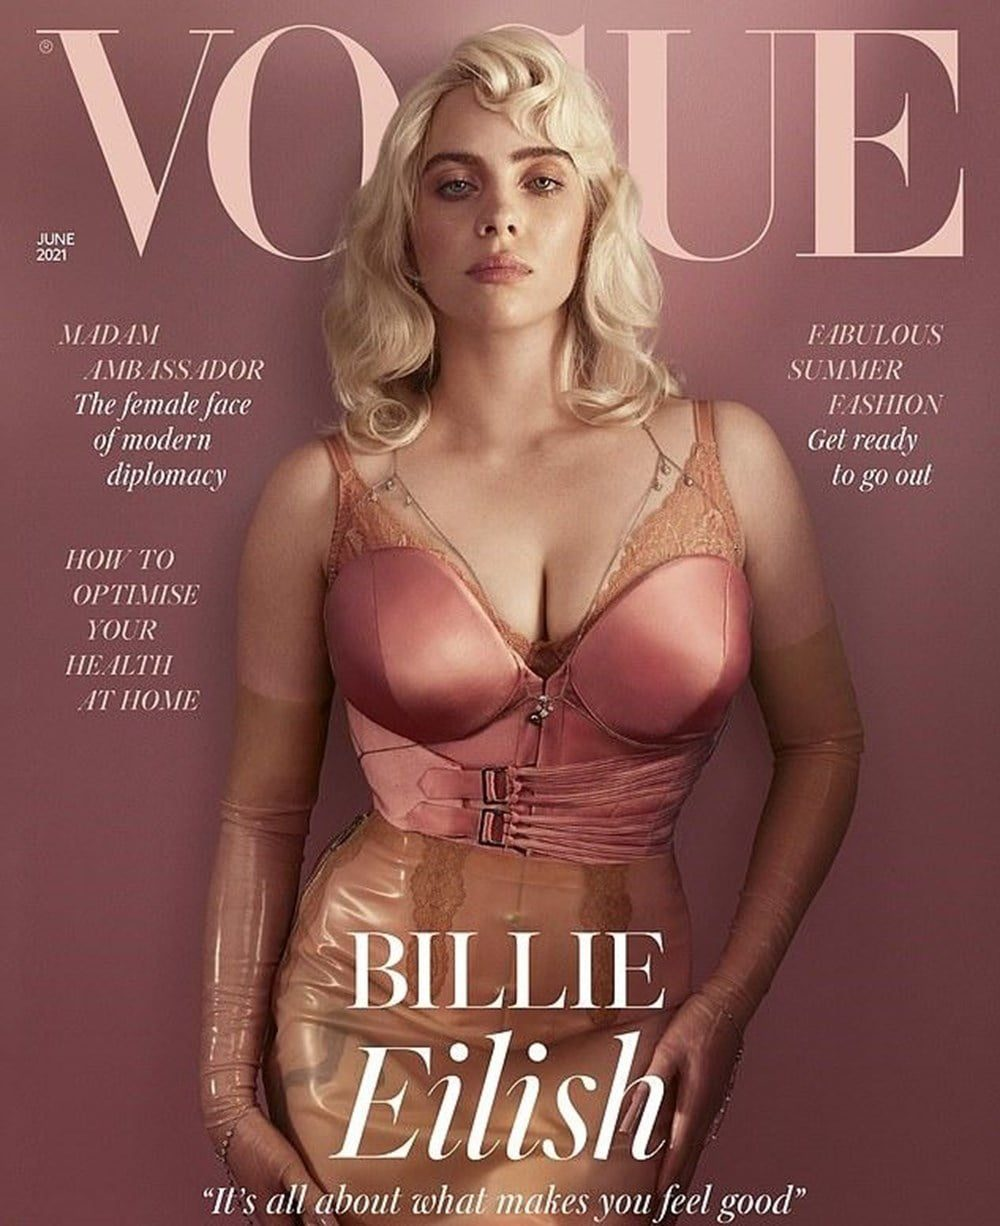 Eilish's much-talked-about VOUGE cover